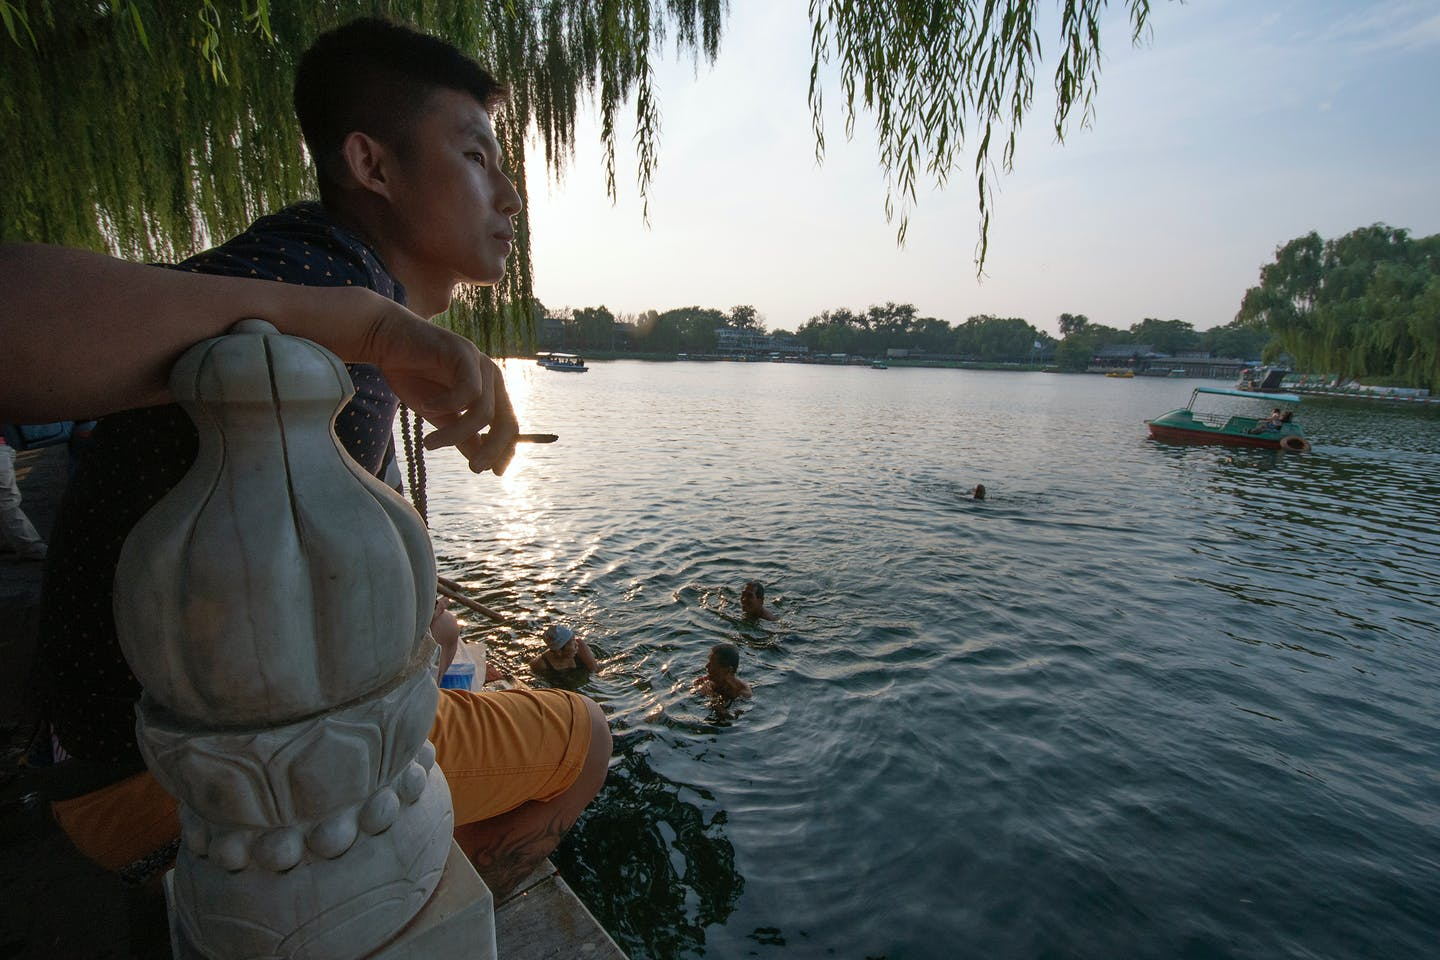 cooling off by Qianhai Lake in Beijing's Shichahai